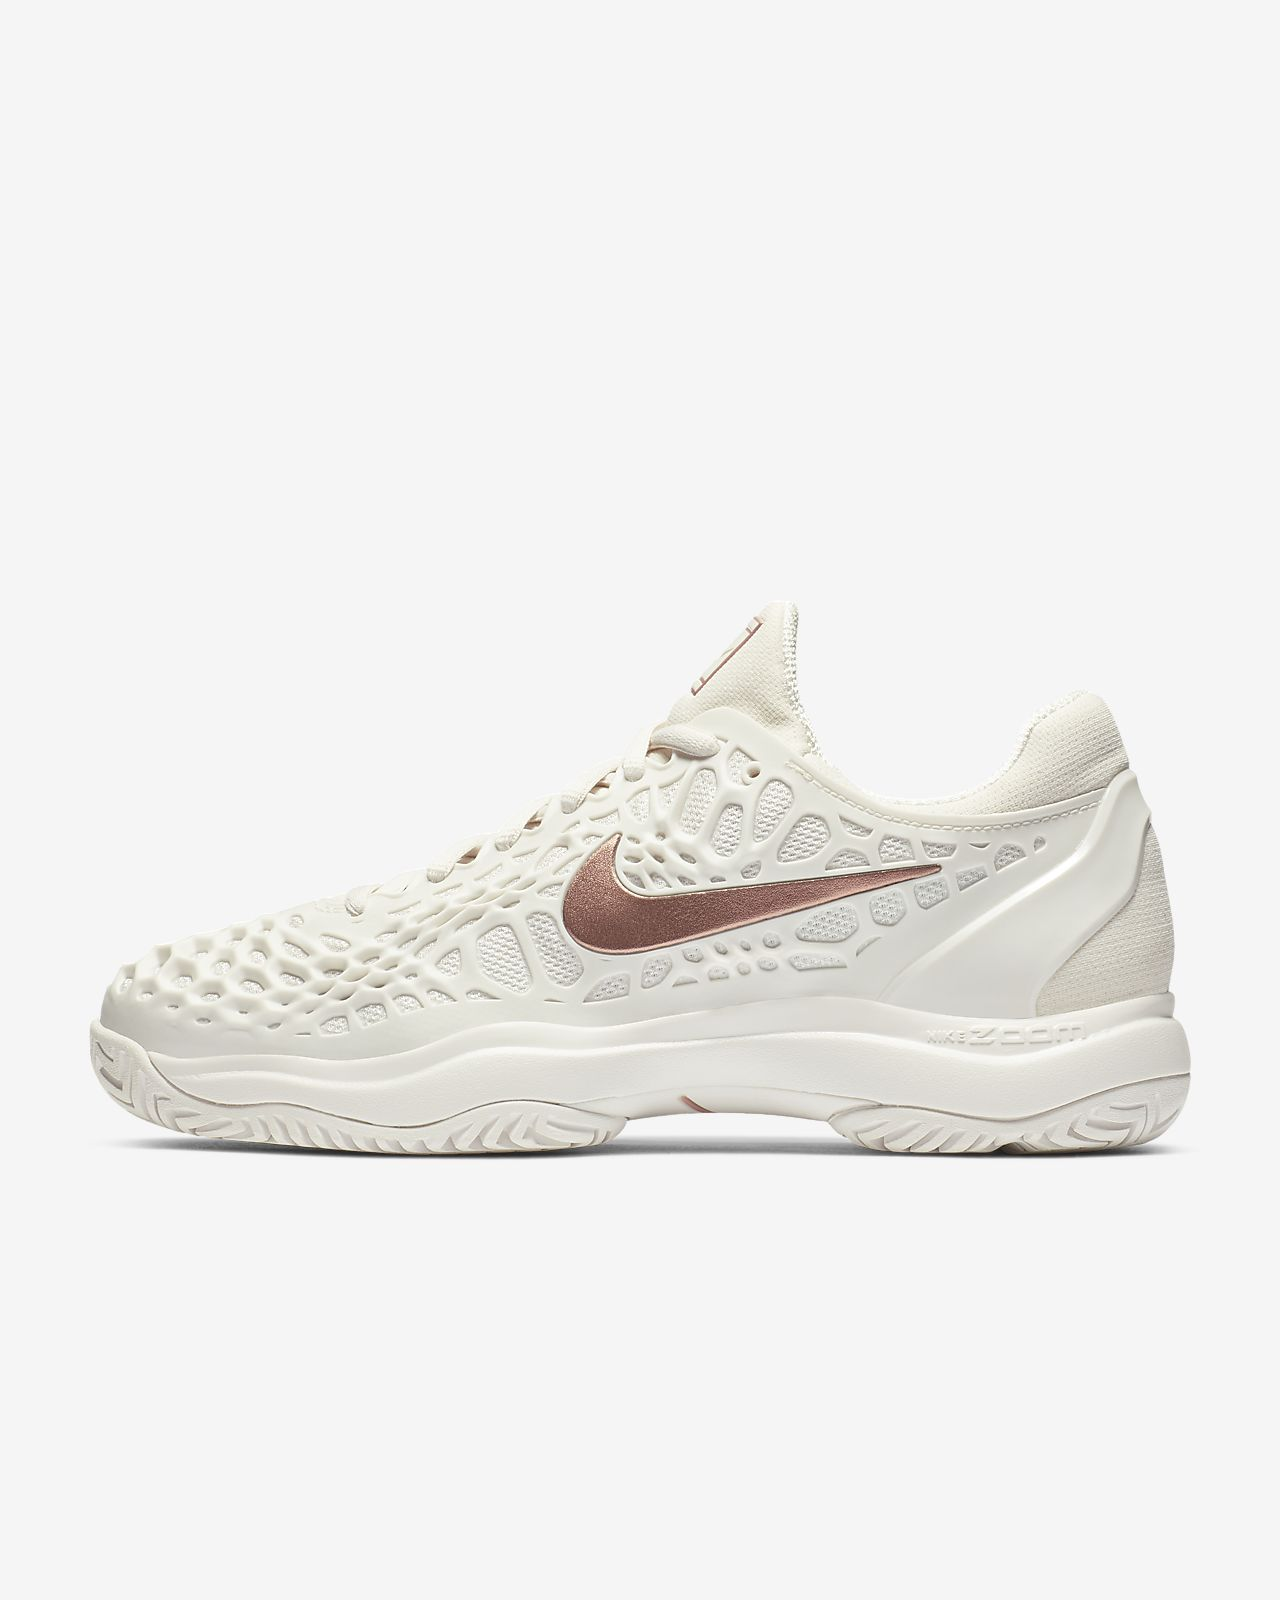 on sale 898a4 37cd3 NikeCourt Zoom Cage 3-hardcourt-tennissko til kvinder